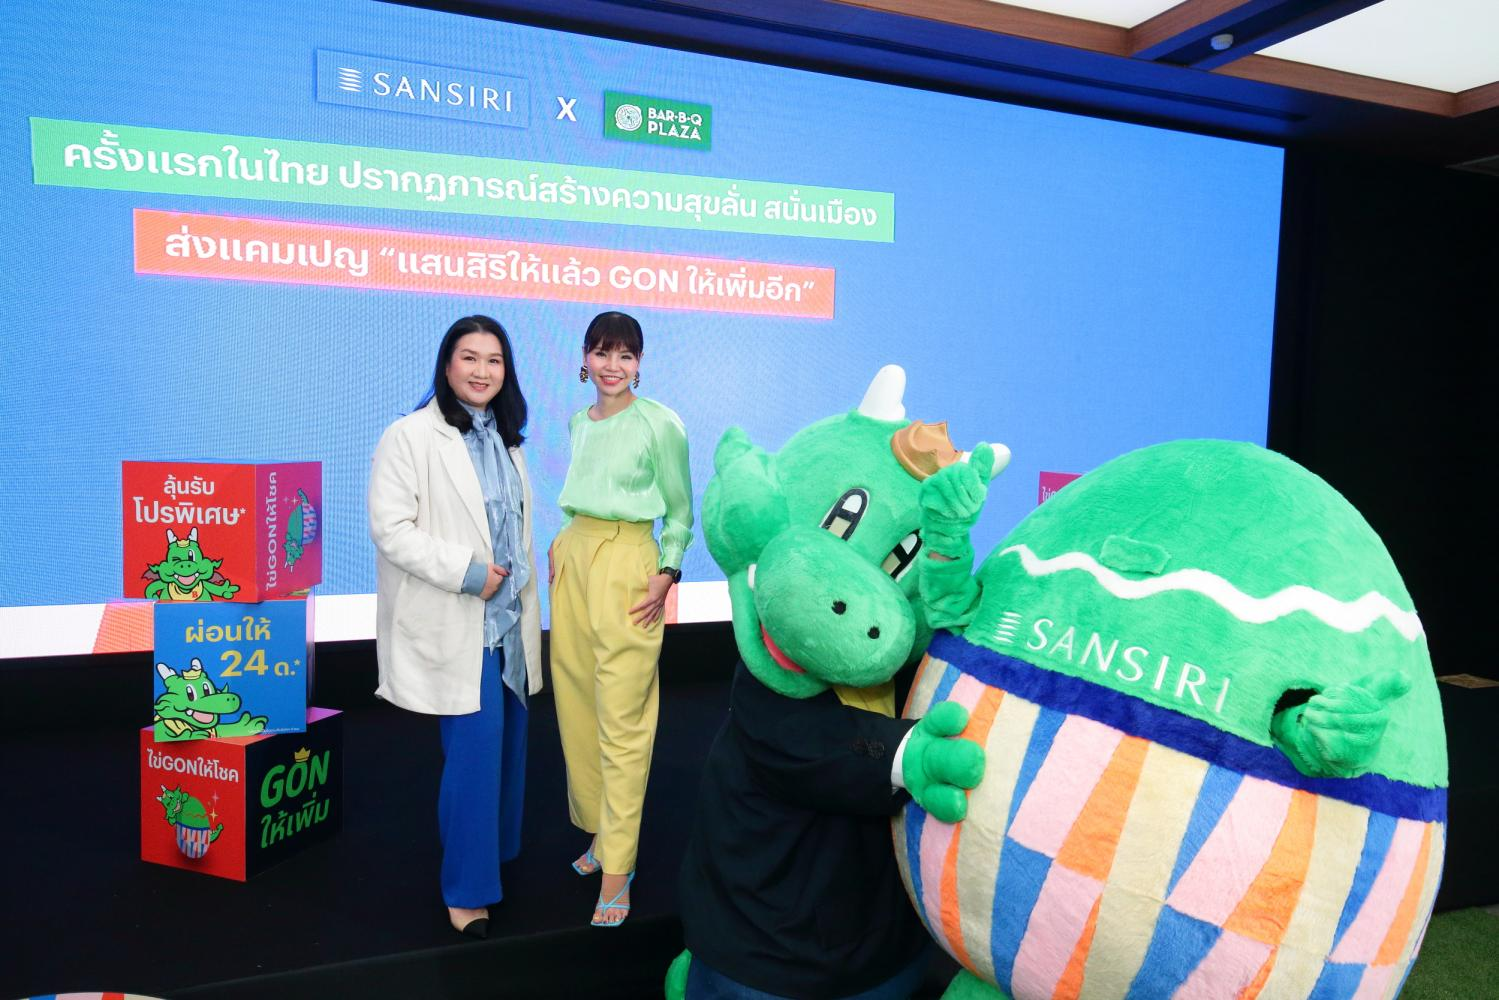 Sansiri uses Bar-B-Q Plaza for campaign